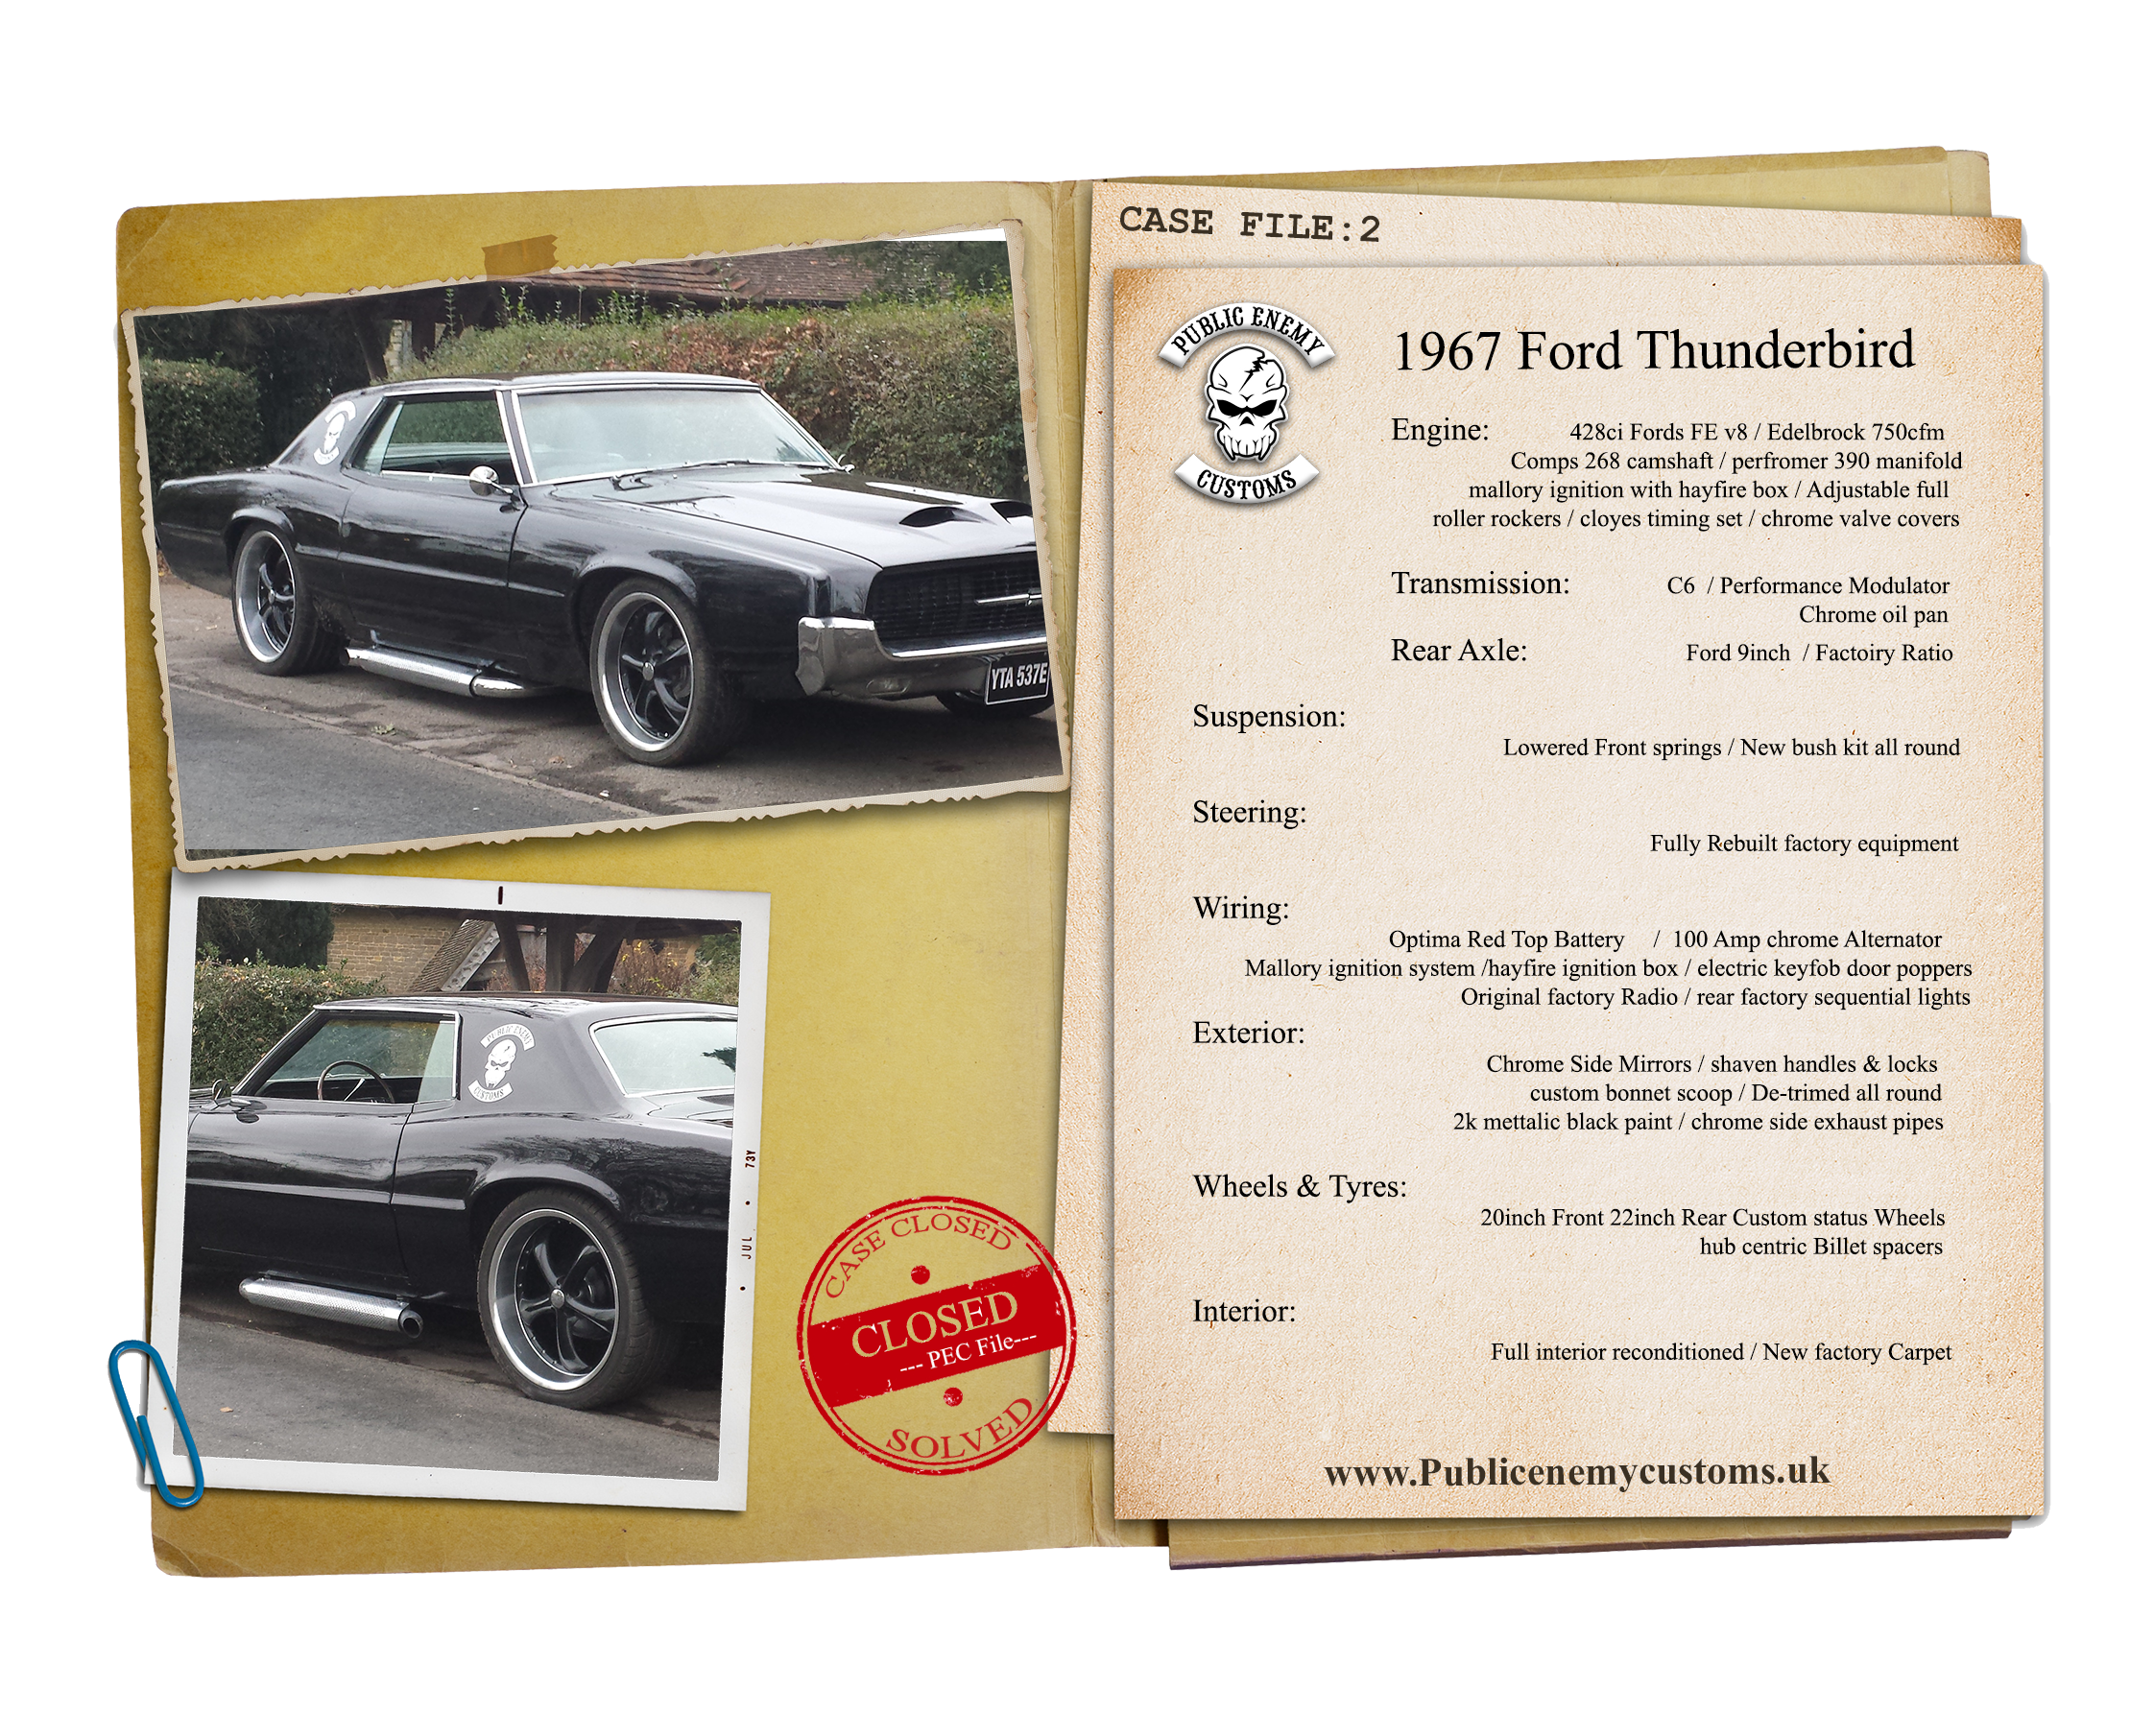 1967 Ford Thunderbird Case File 2